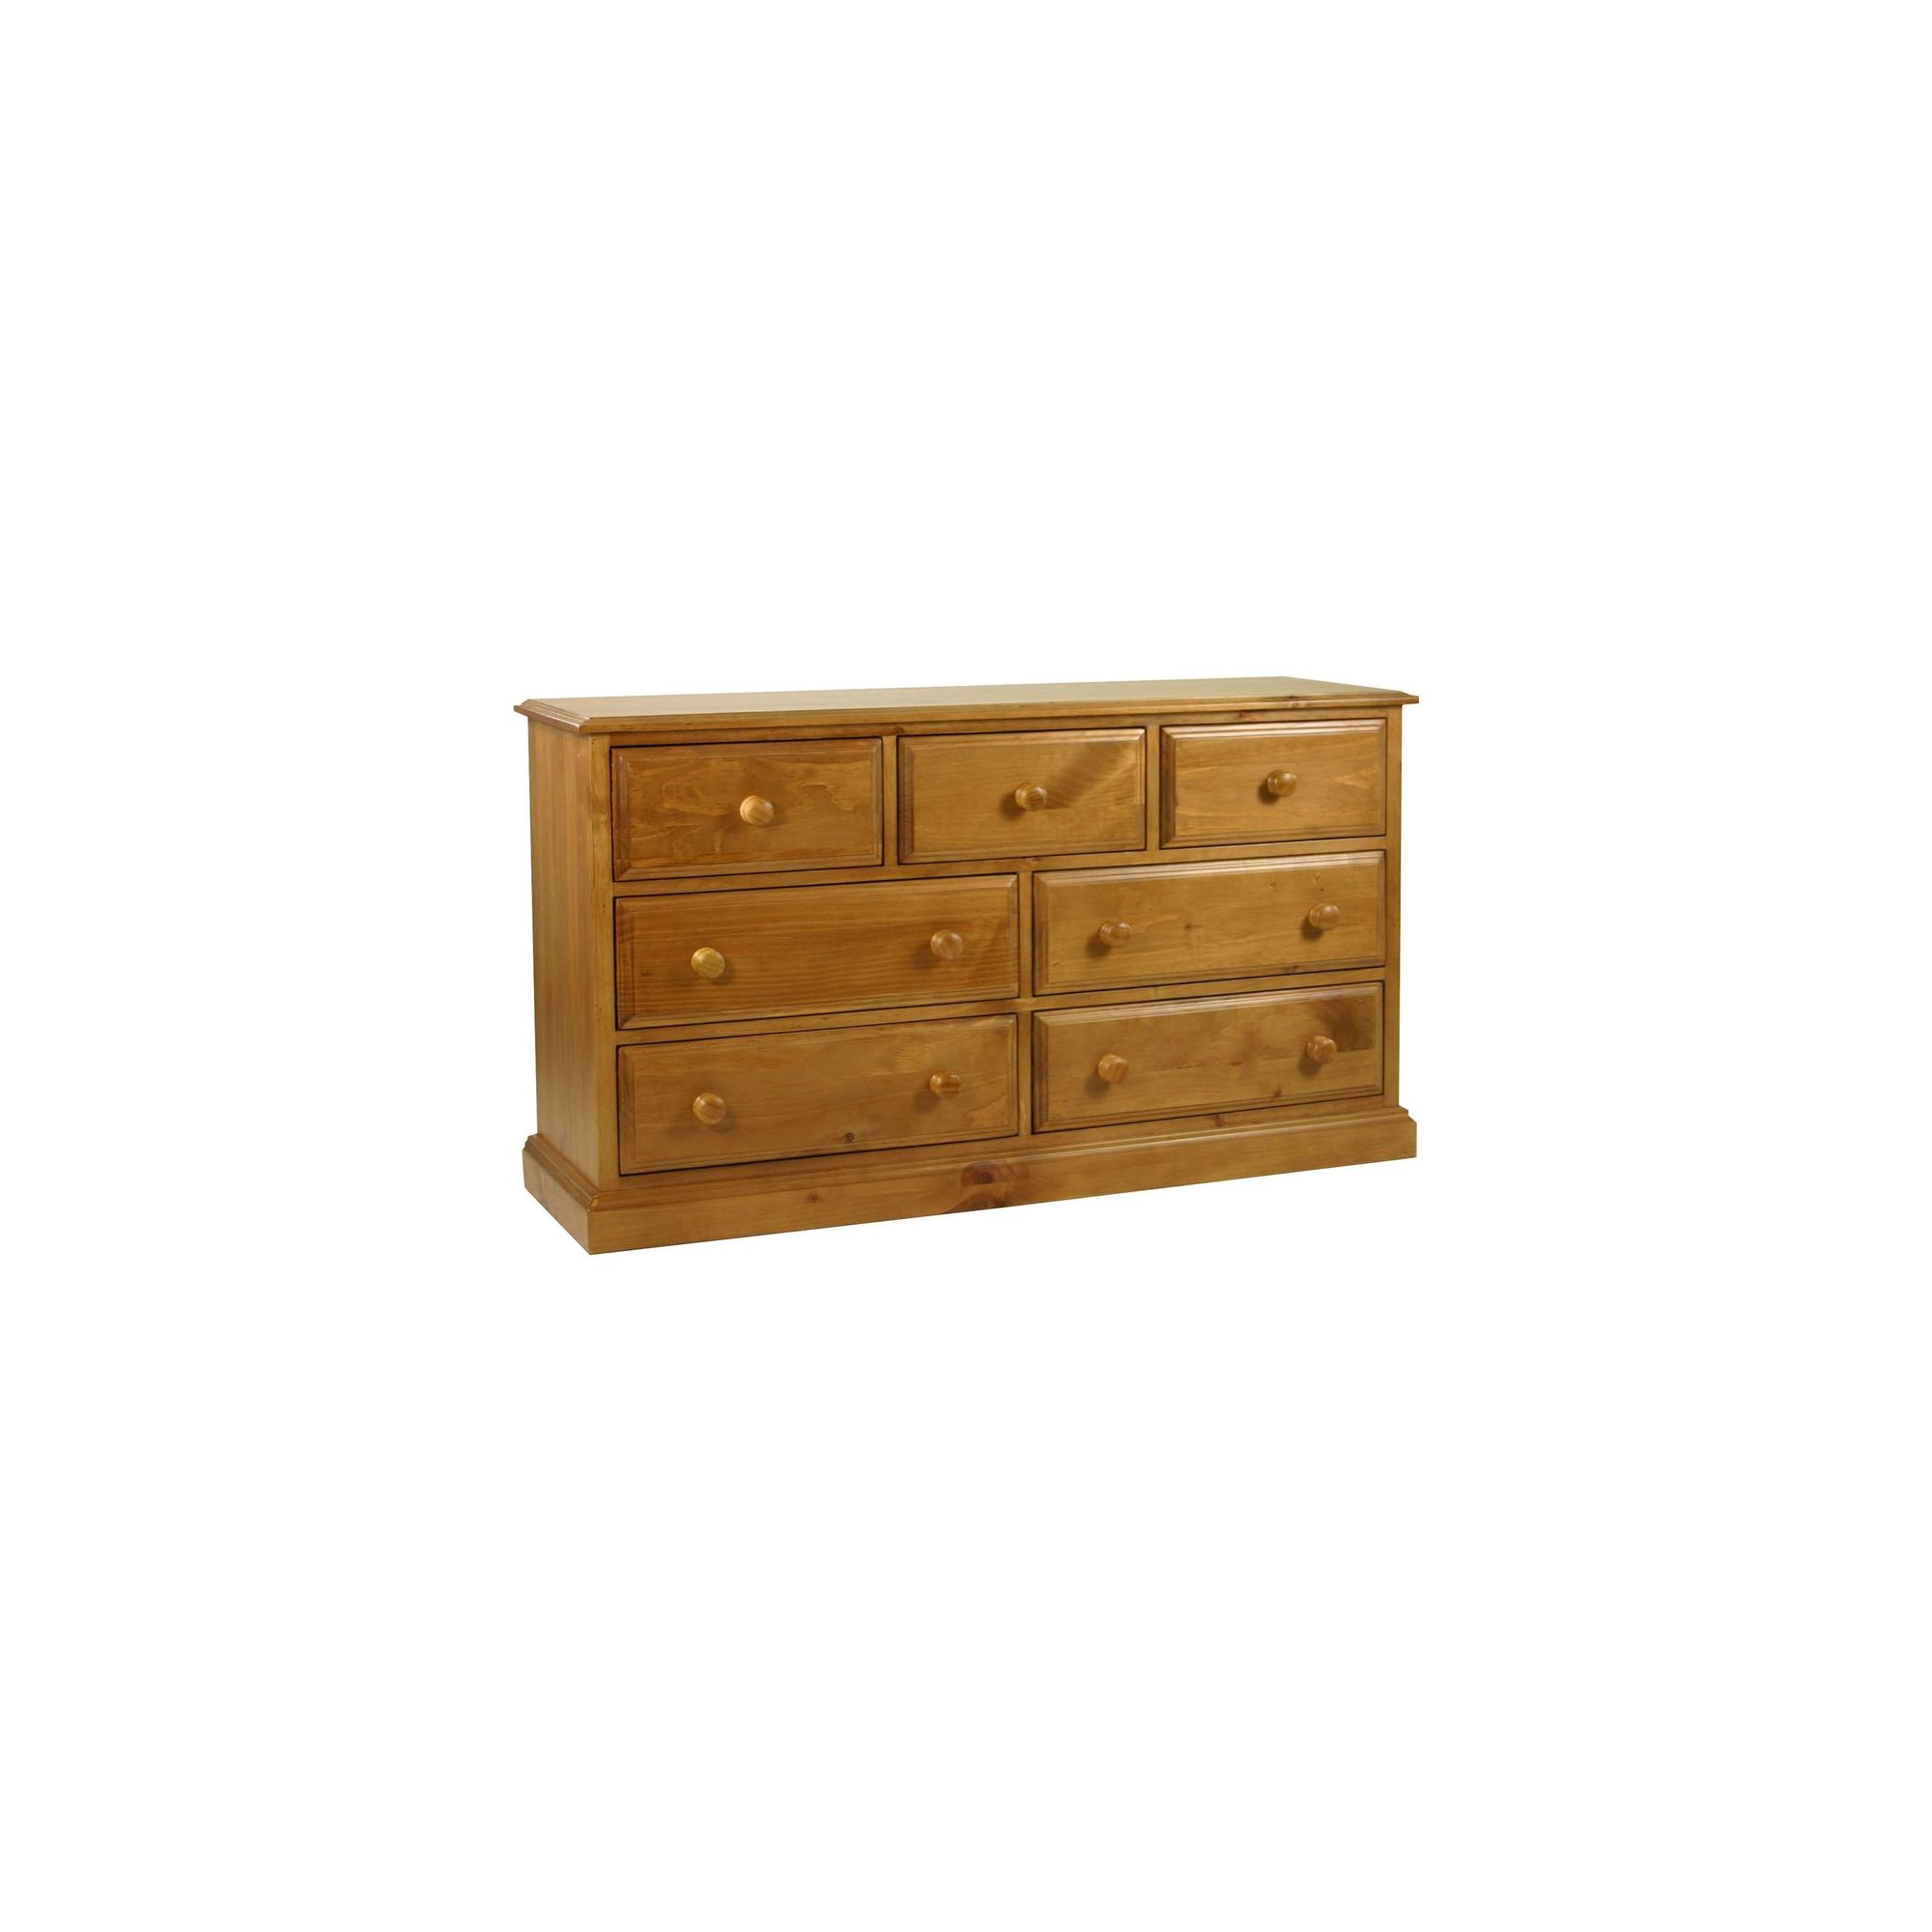 Kelburn Furniture Pine 3 Over 4 Drawer Wide Chest in Antique Wax Lacquer at Tesco Direct